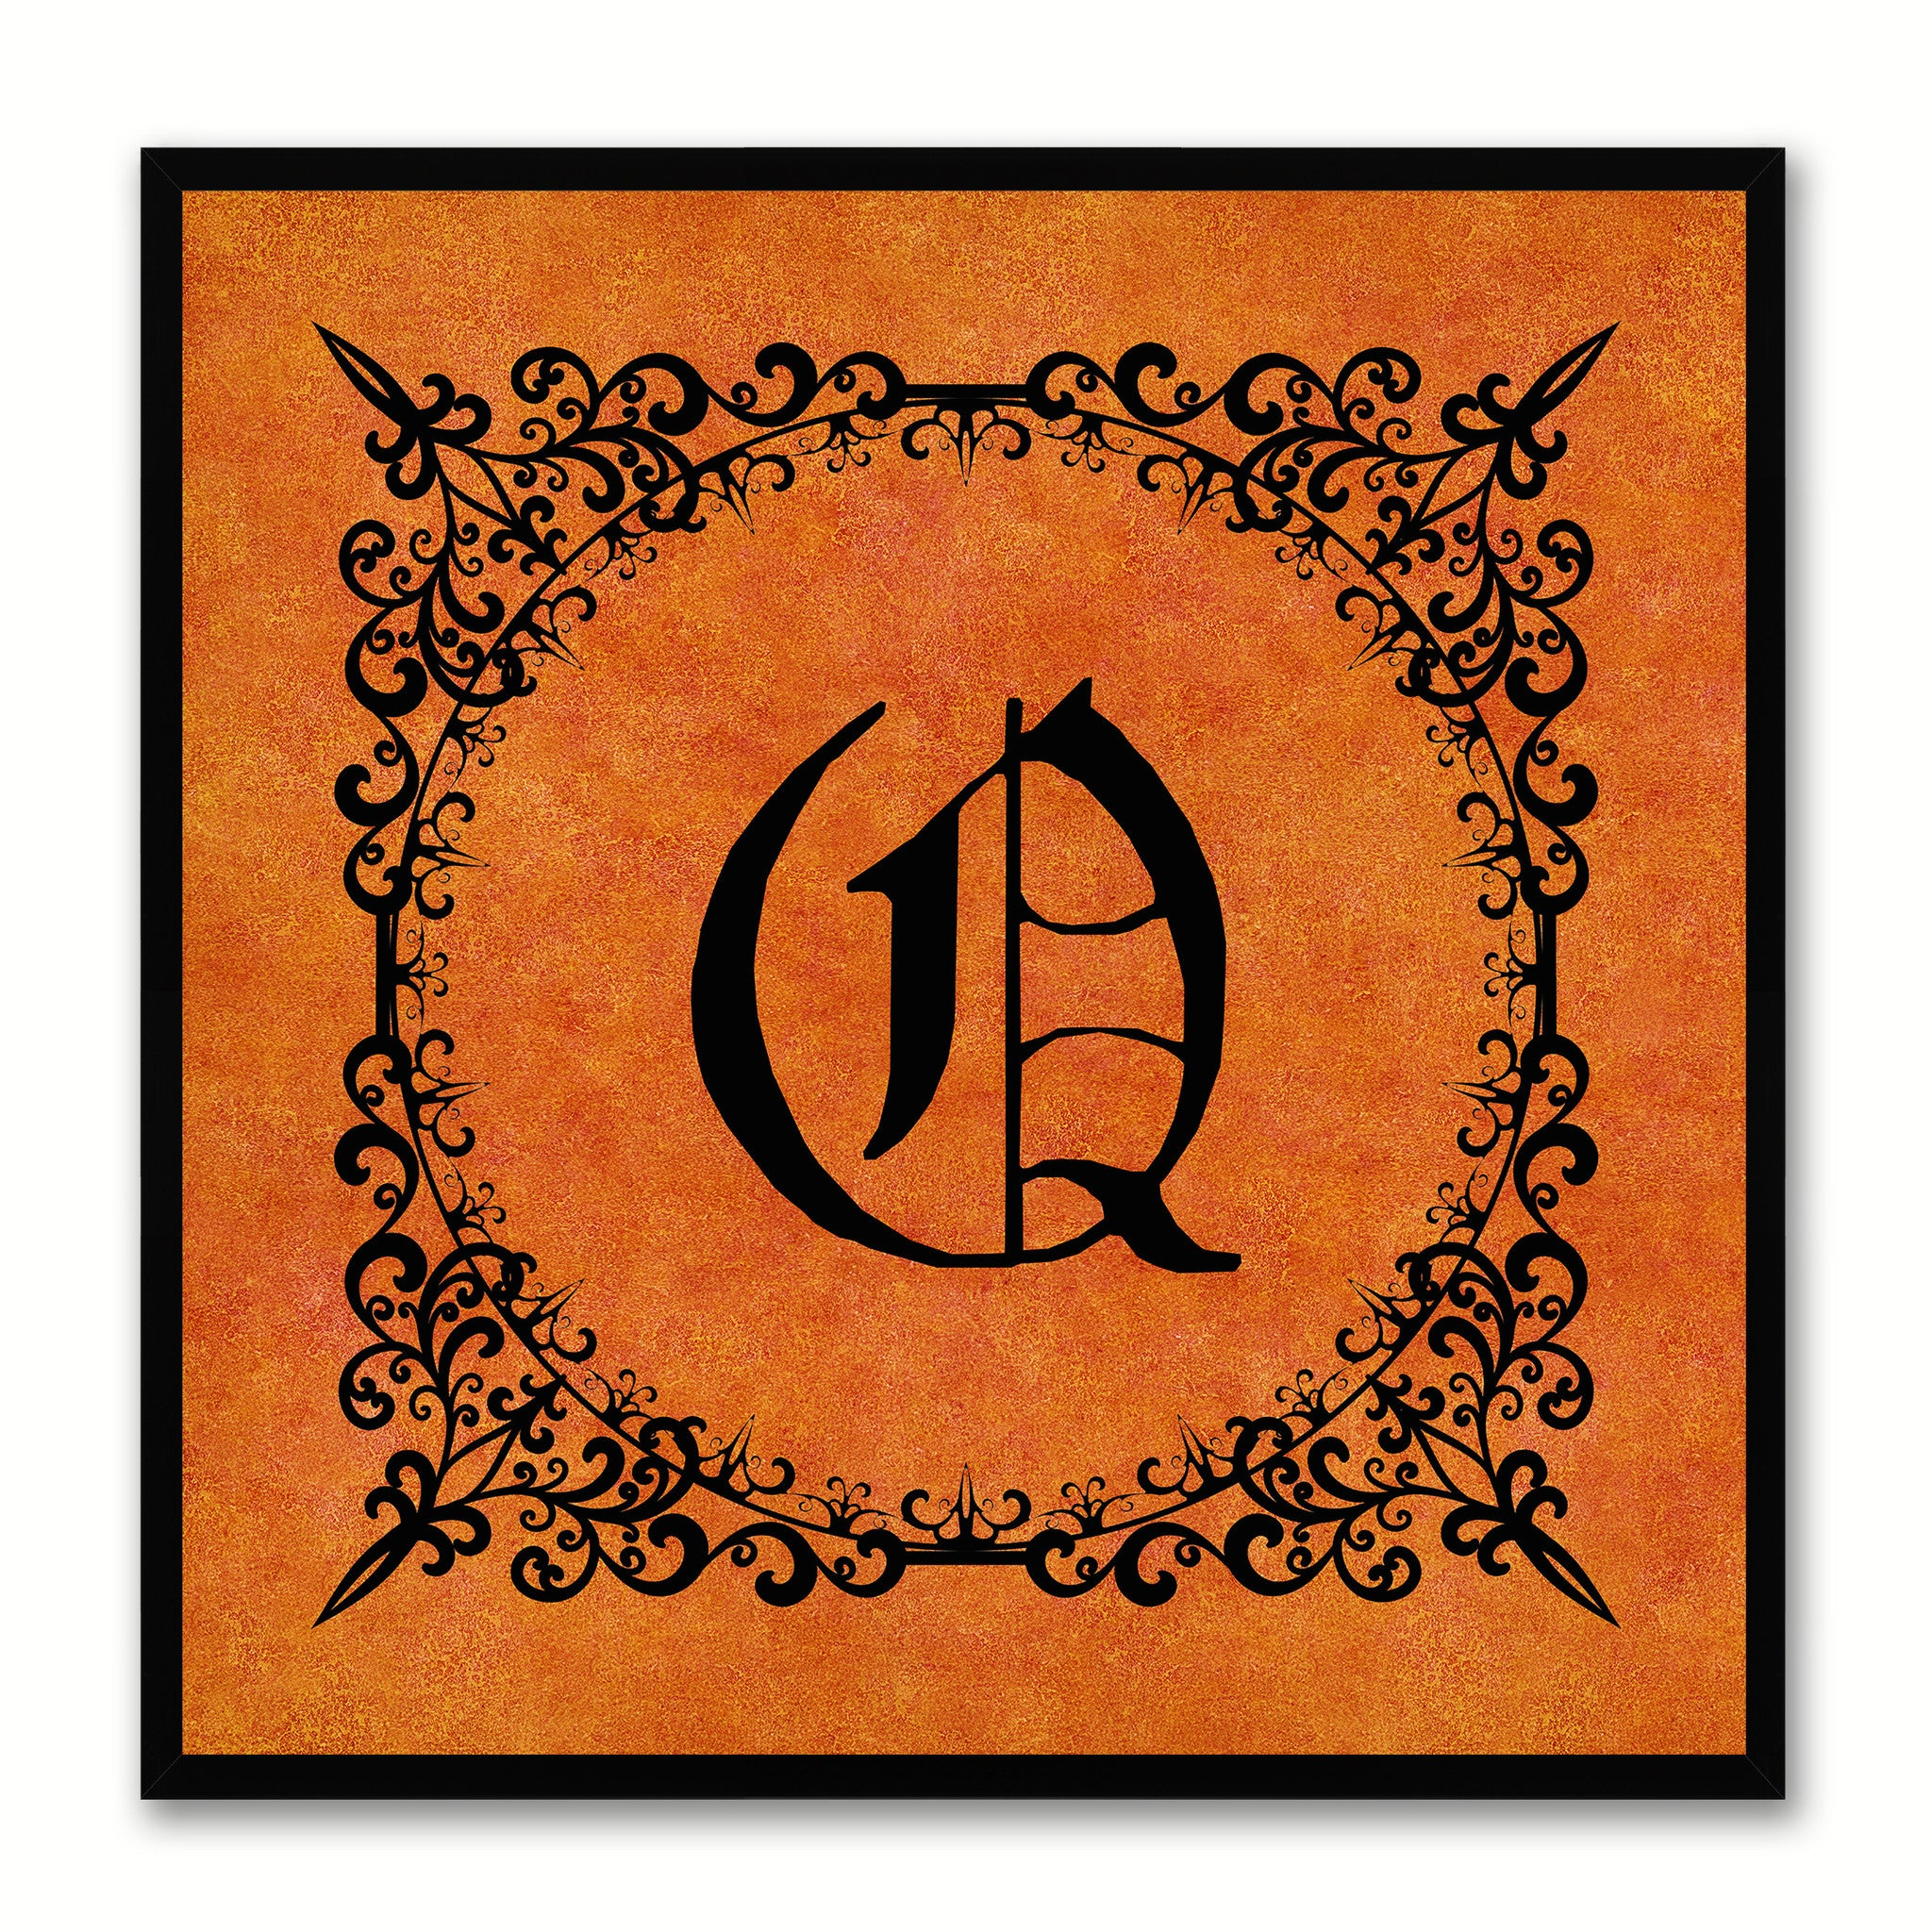 Alphabet Q Orange Canvas Print Black Frame Kids Bedroom Wall Décor Home Art